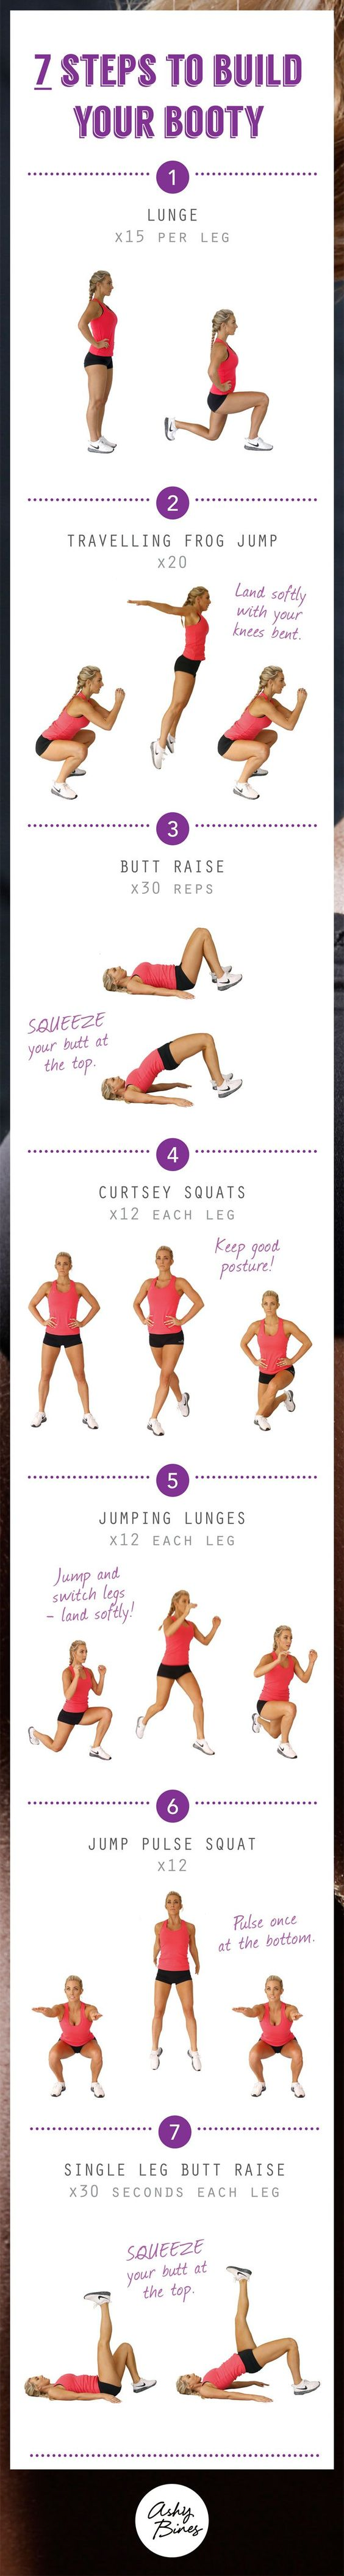 steps to build your booty